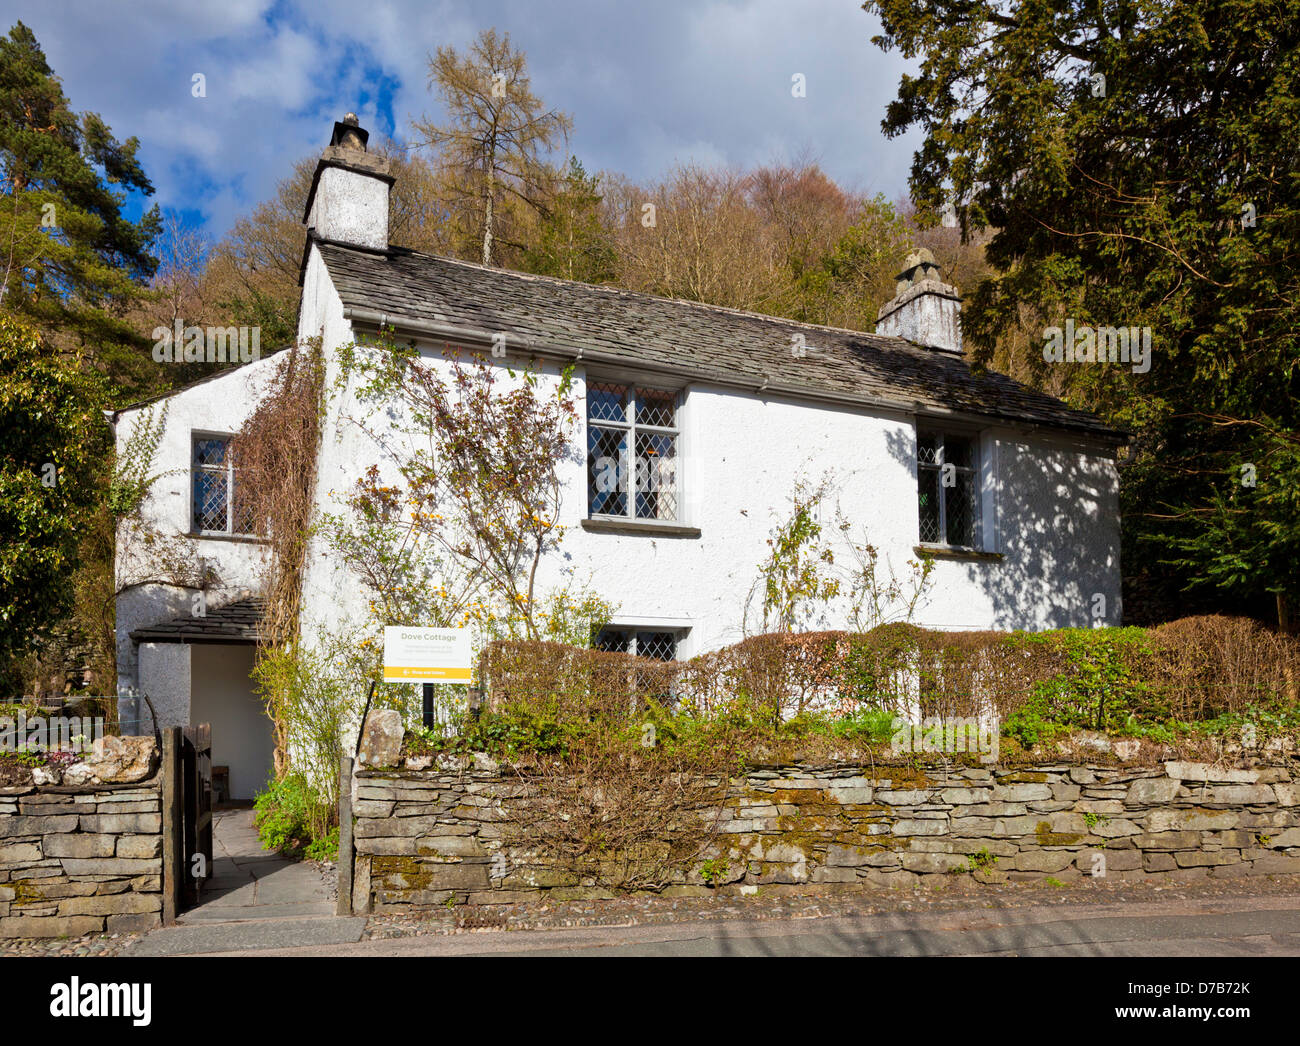 Dove cottage in Grasmere Village Cumbria Lake District England UK GB EU Europe - Stock Image